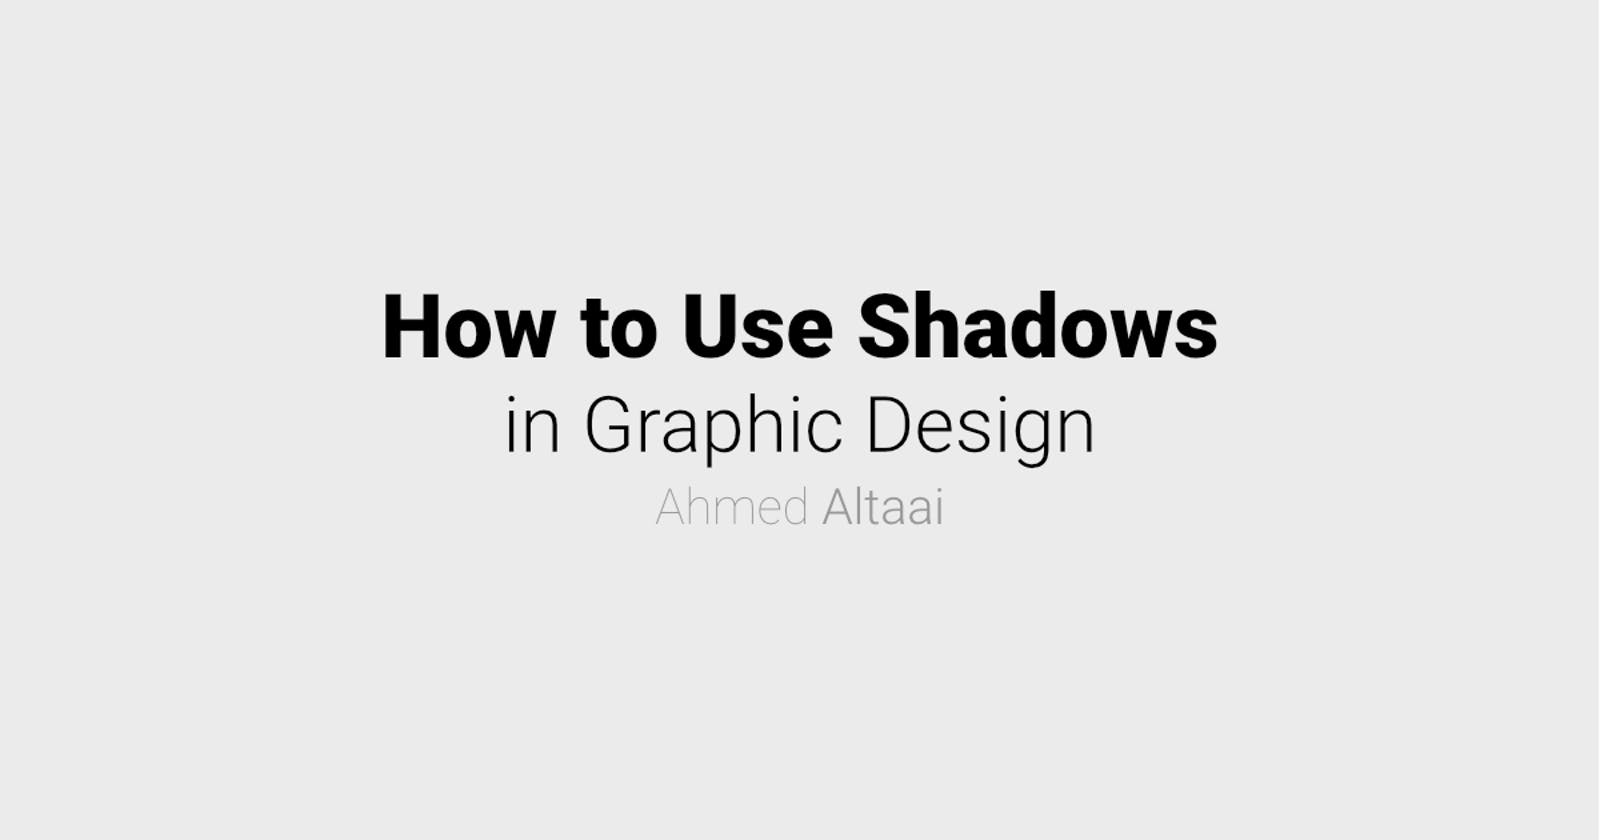 How to Use Shadows in Graphic Design